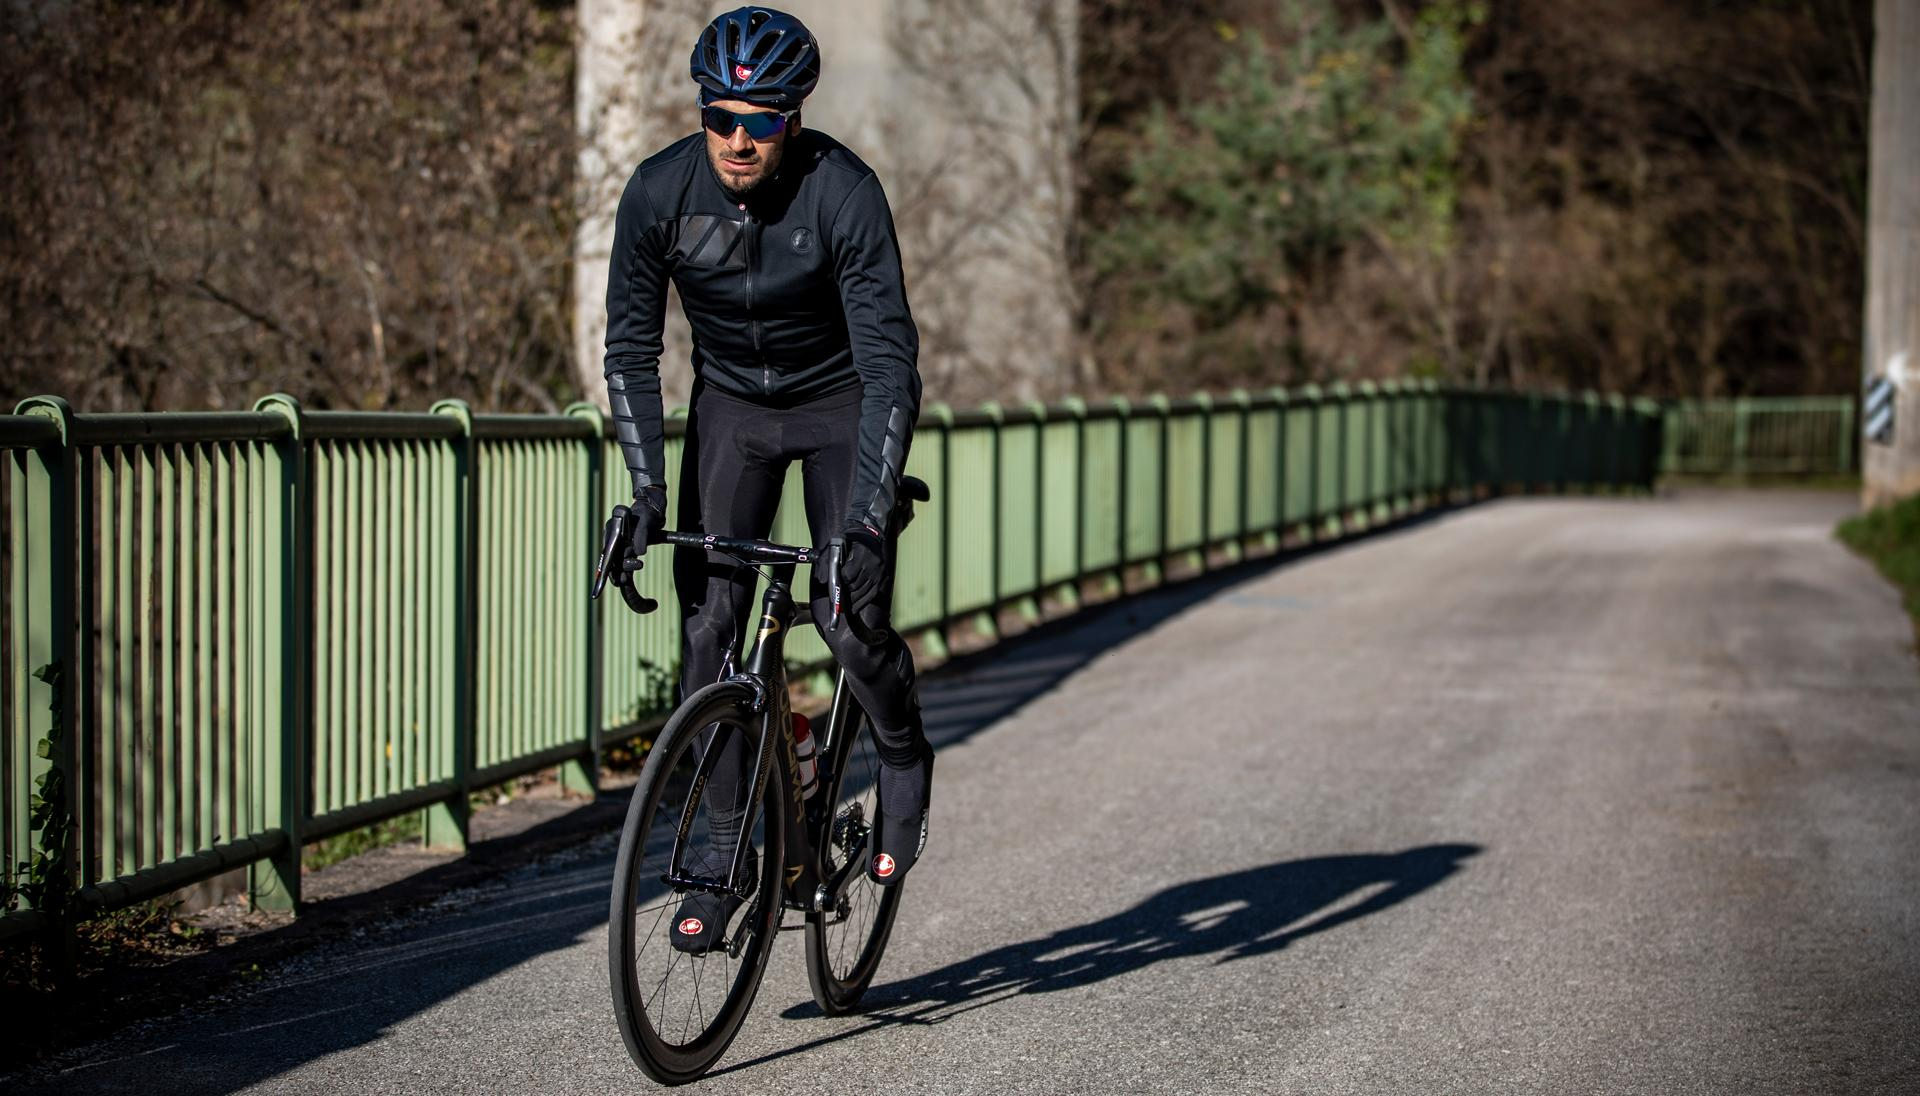 Castelli Fietsjack lange mouwen winter sterk waterafstotend voor Heren Zwart Reflective / CA Raddoppia 2 Jacket Light Black/Refelx